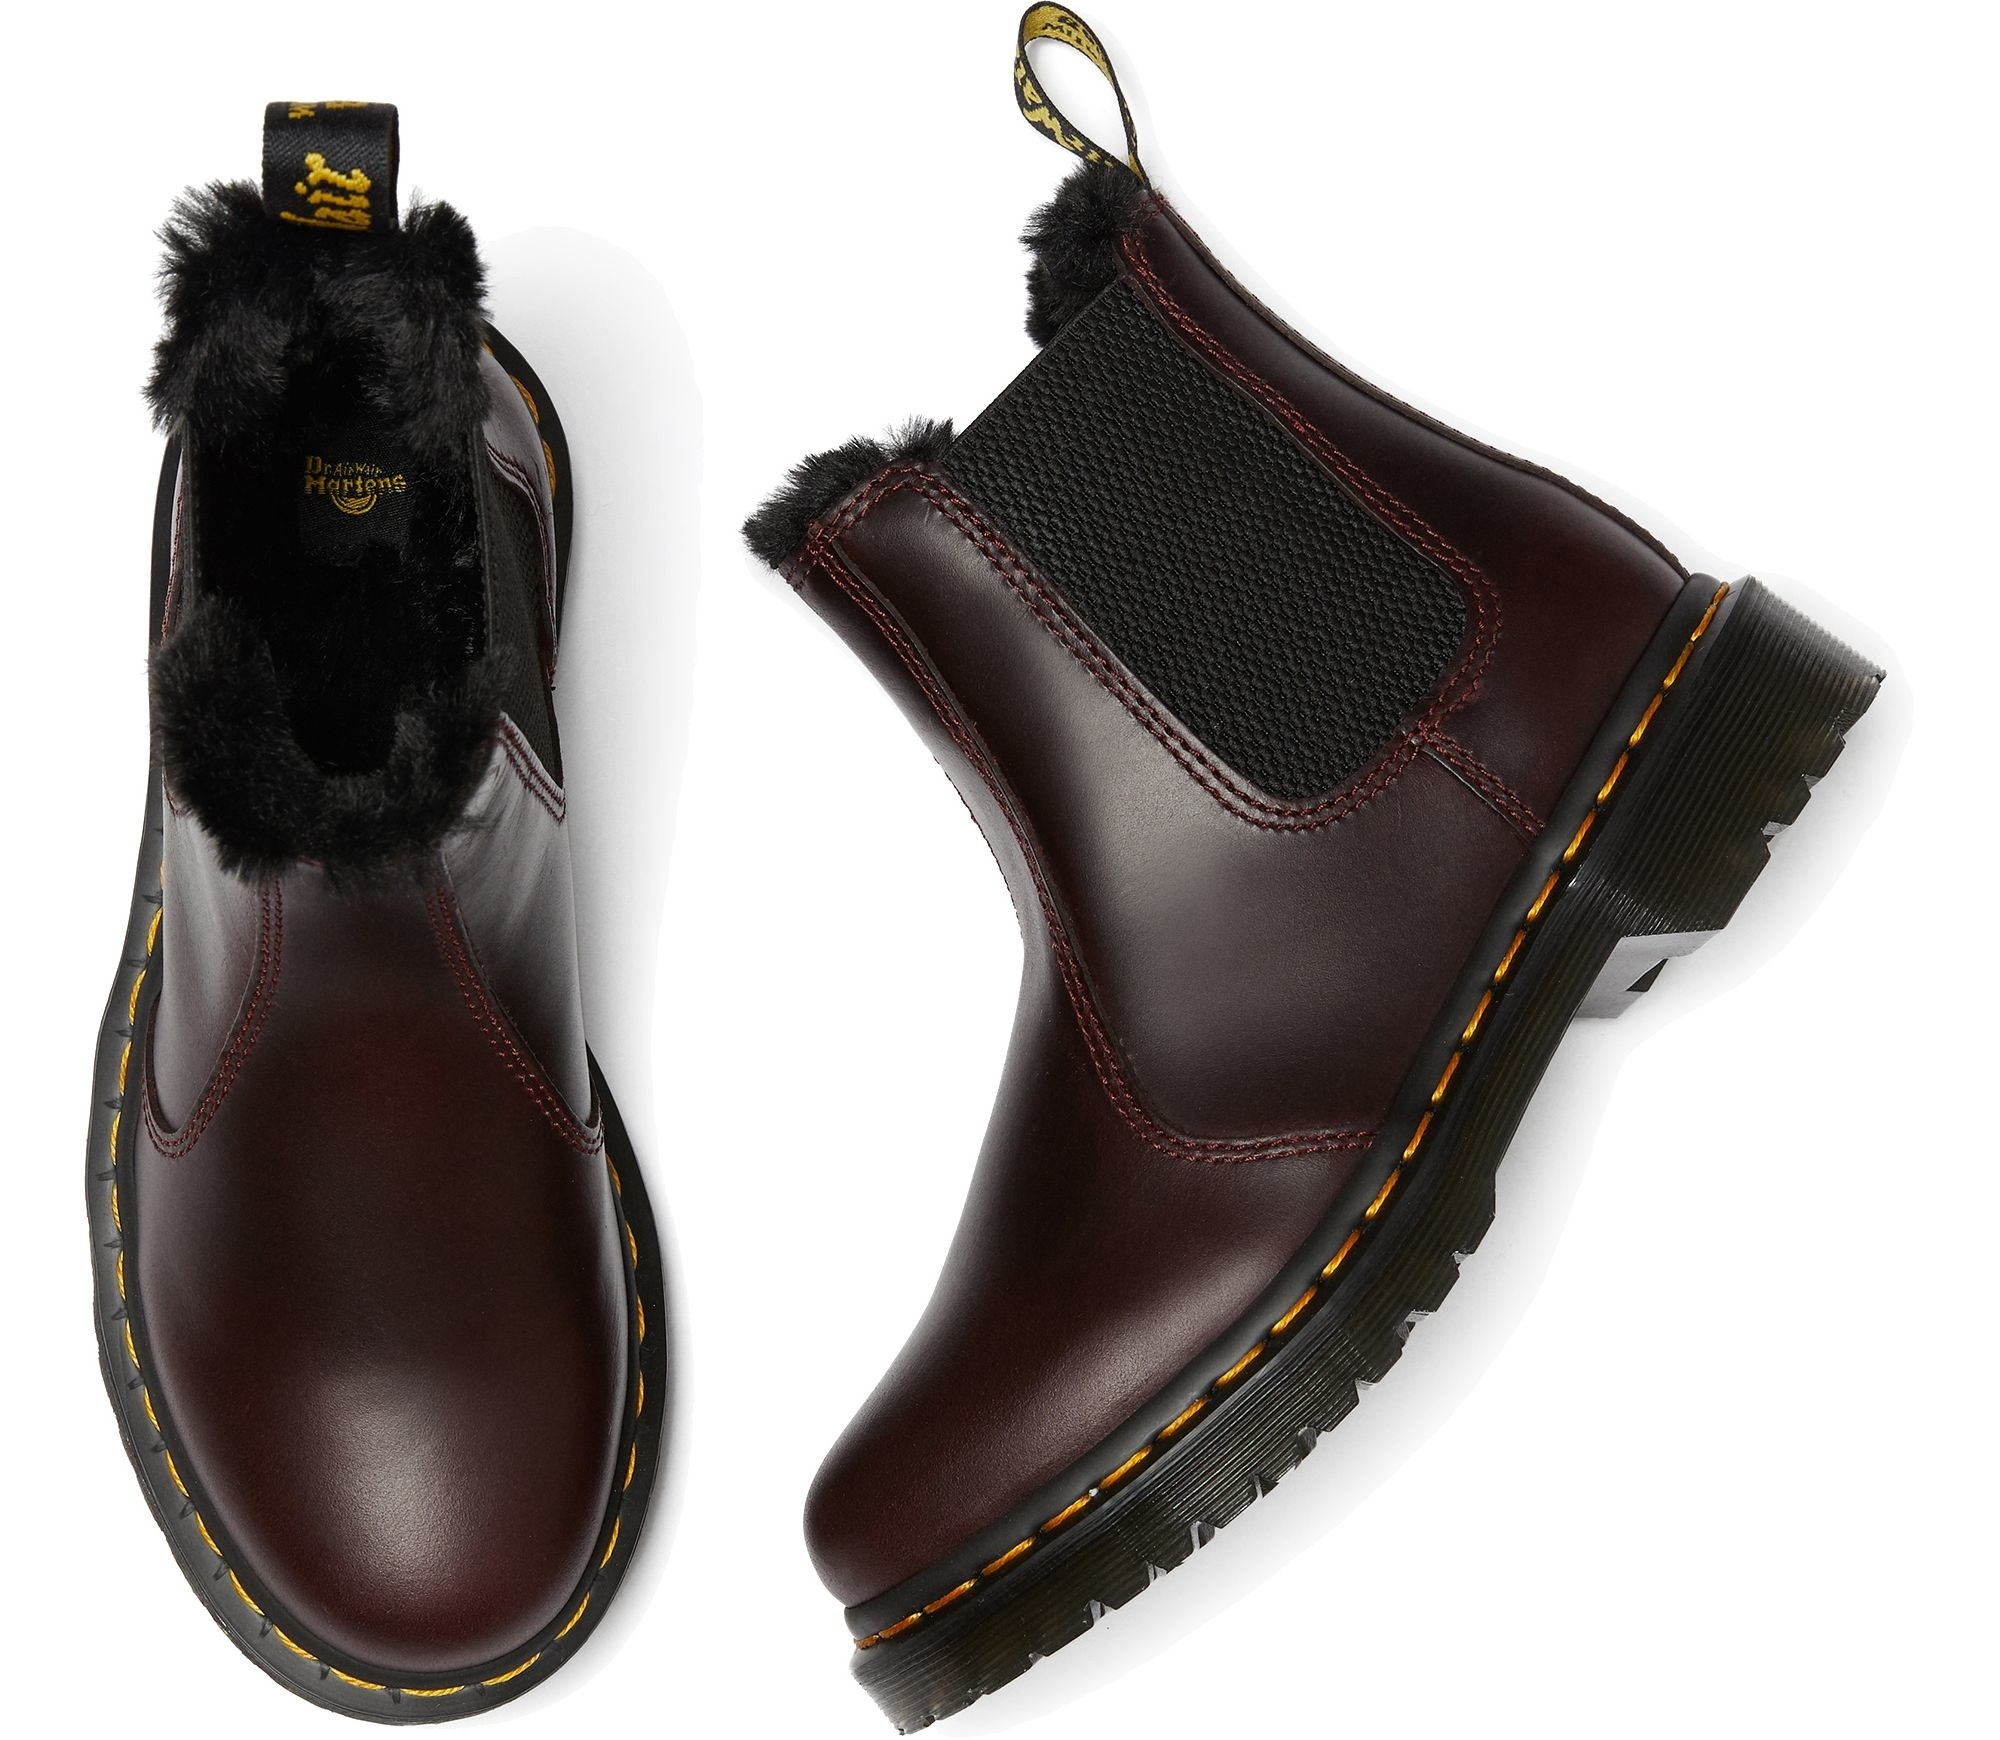 the boots in oxblood